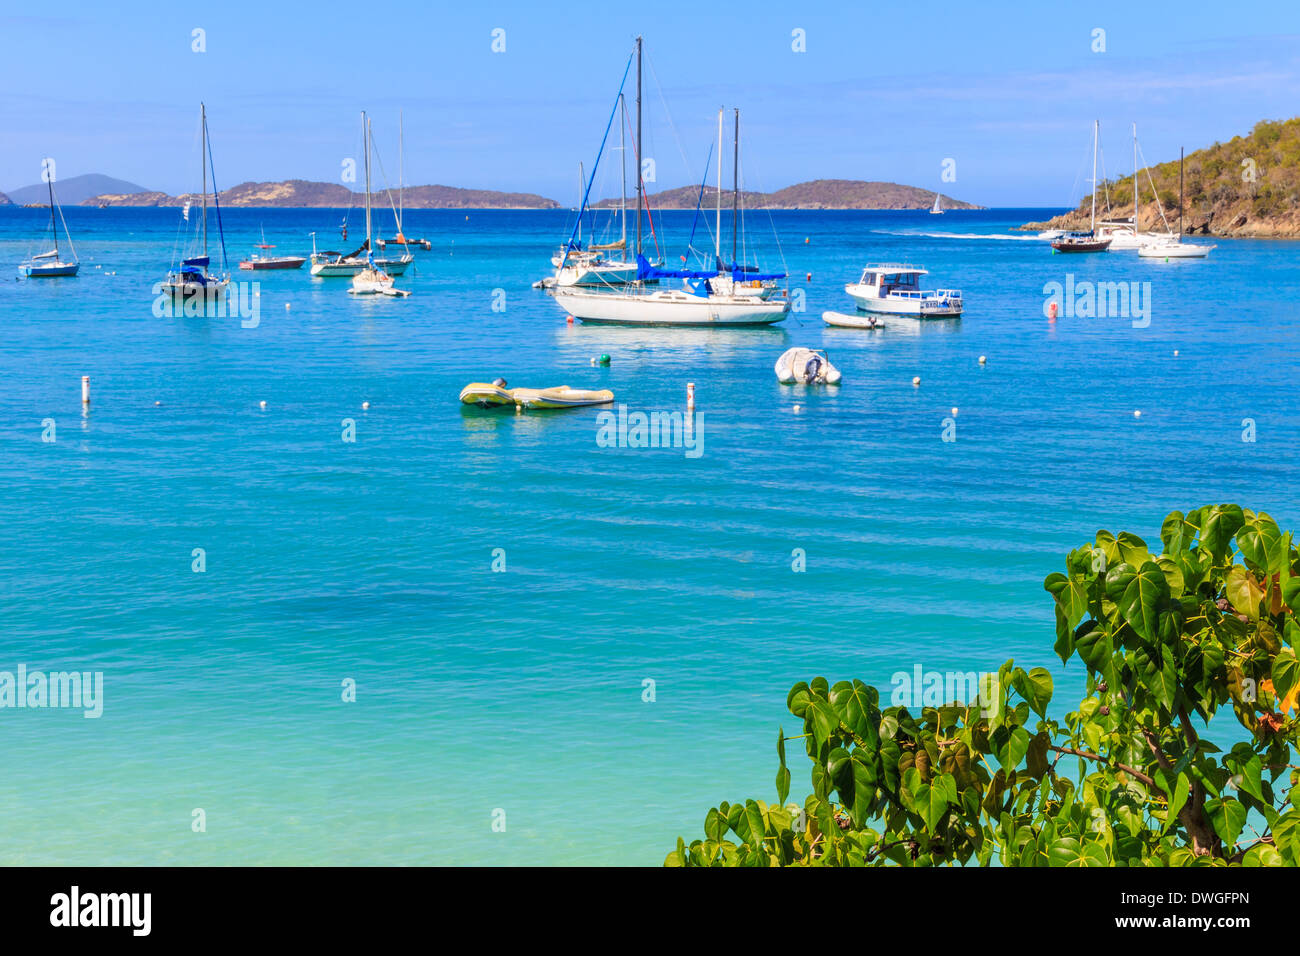 Sailboats and power boats anchored in crystal clear turquoise waters in the Caribbean - Stock Image